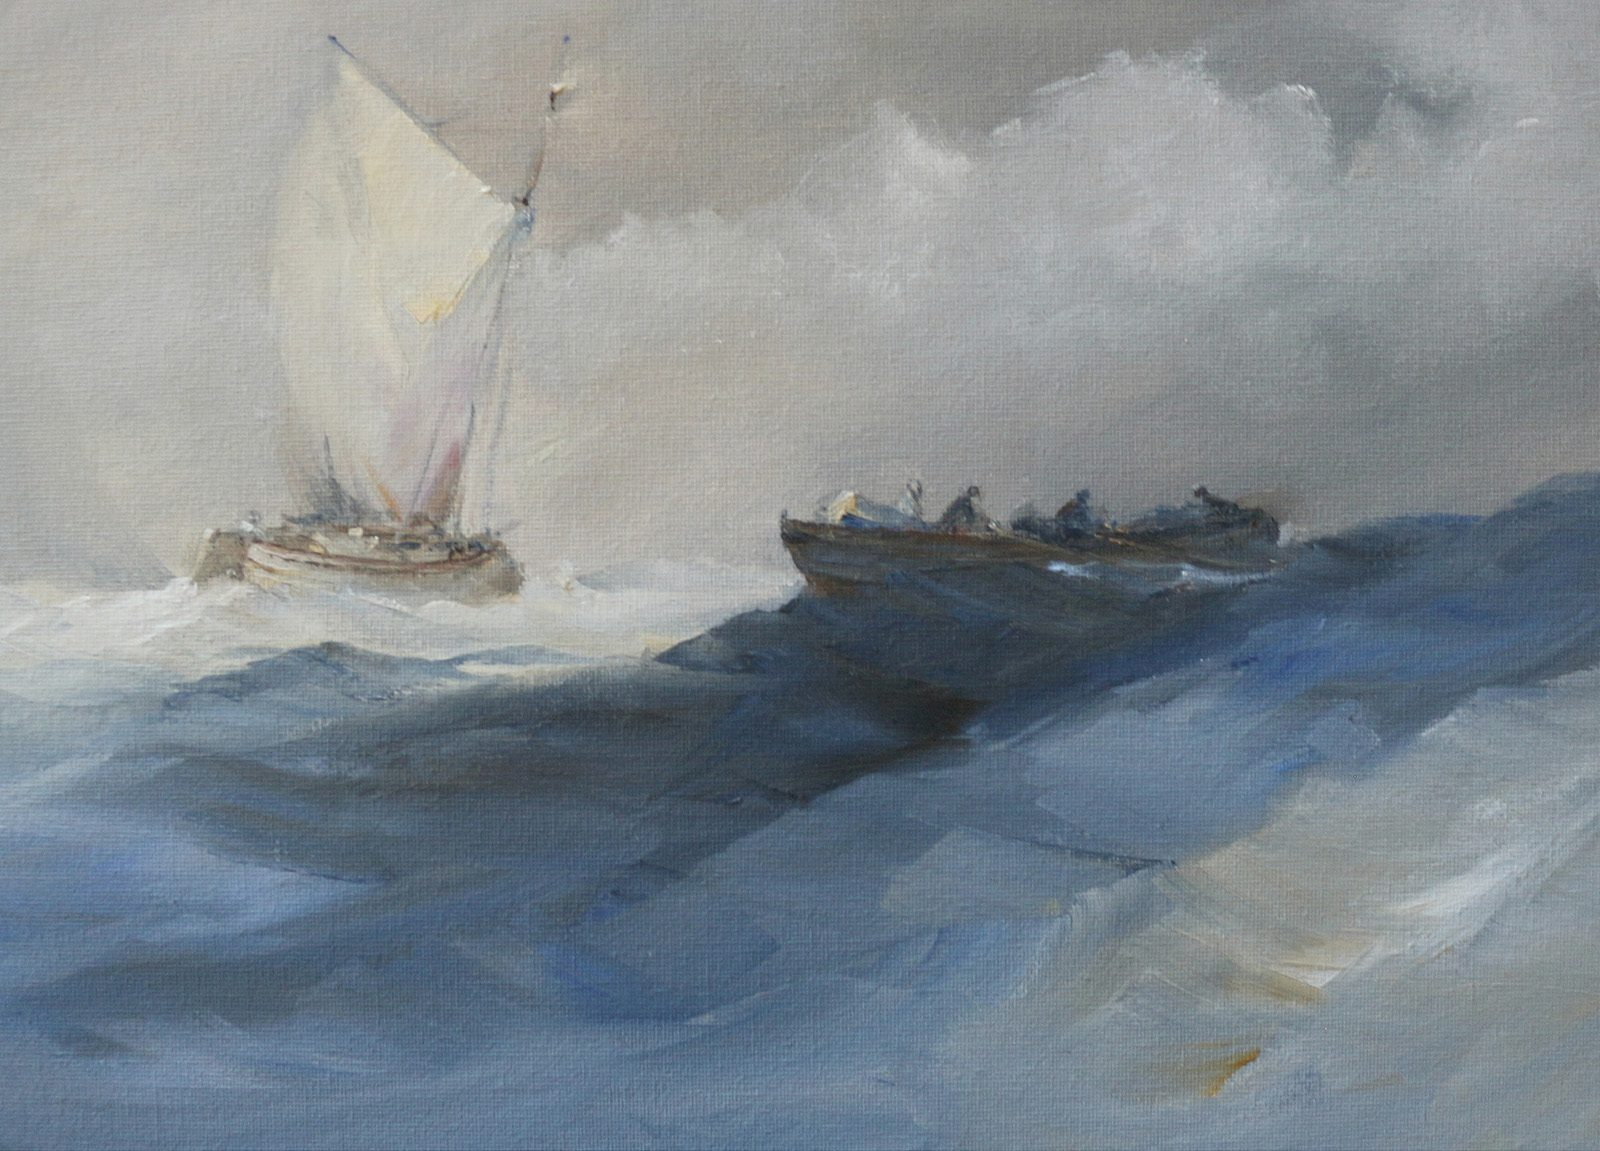 Fishing boats at sea in choppy weather marine oil painting by Stewart Taylor